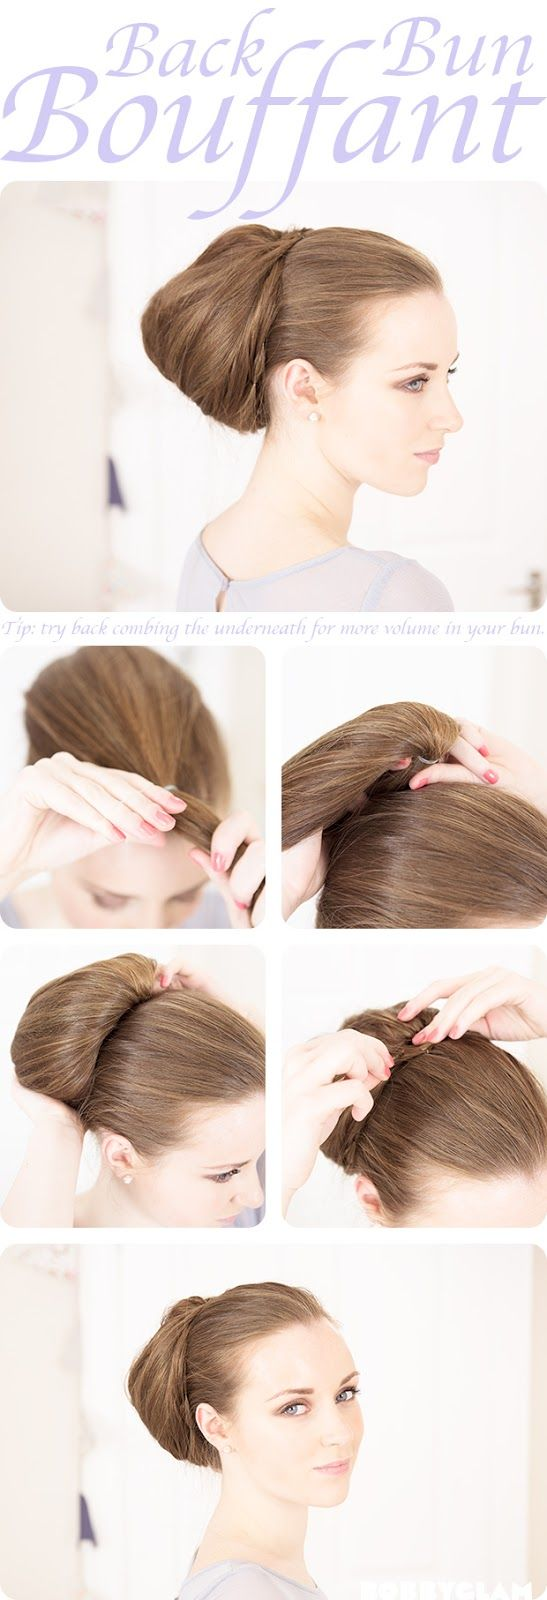 5 bouffant hairstyle tutorials for a glamorous look